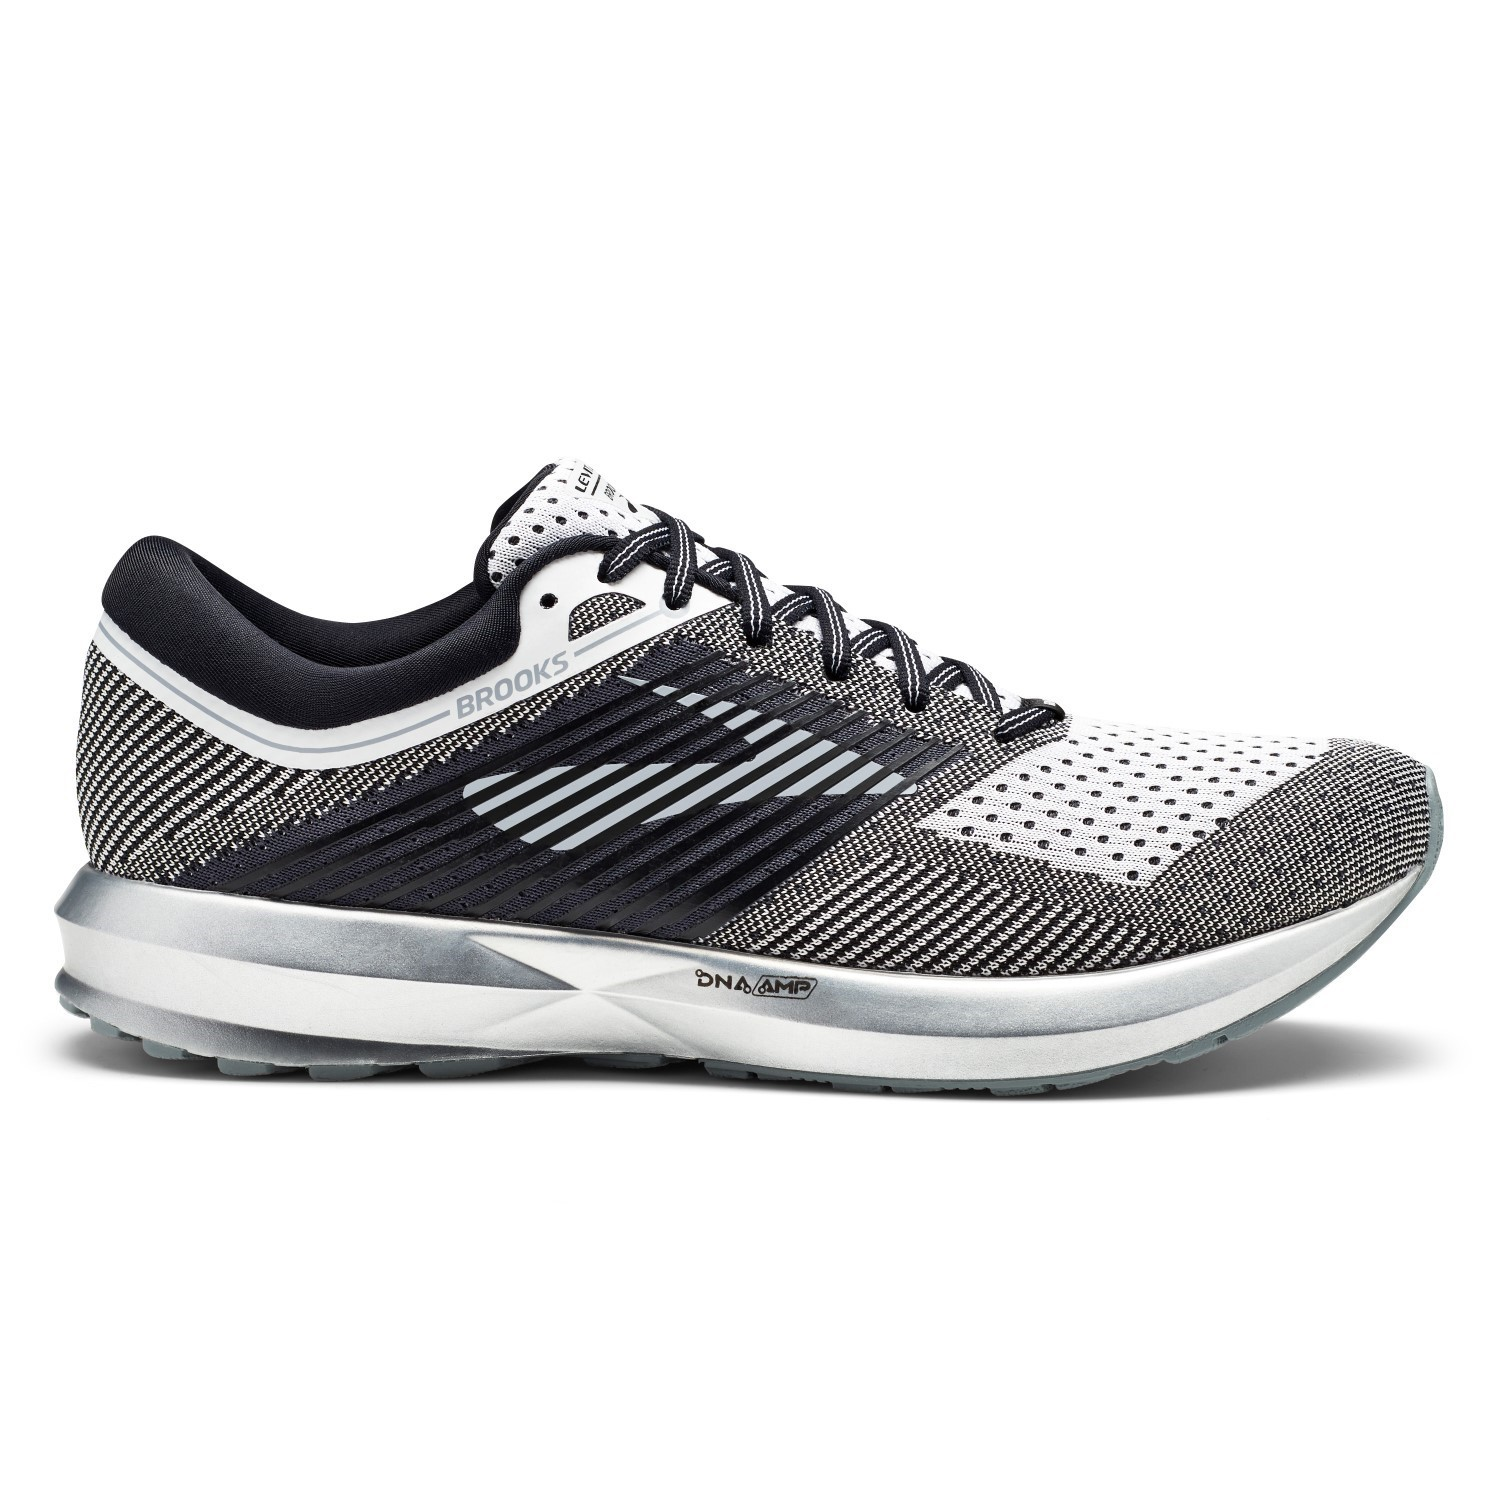 Brooks Levitate - Mens Running Shoes - White Black Grey  98c8904e9